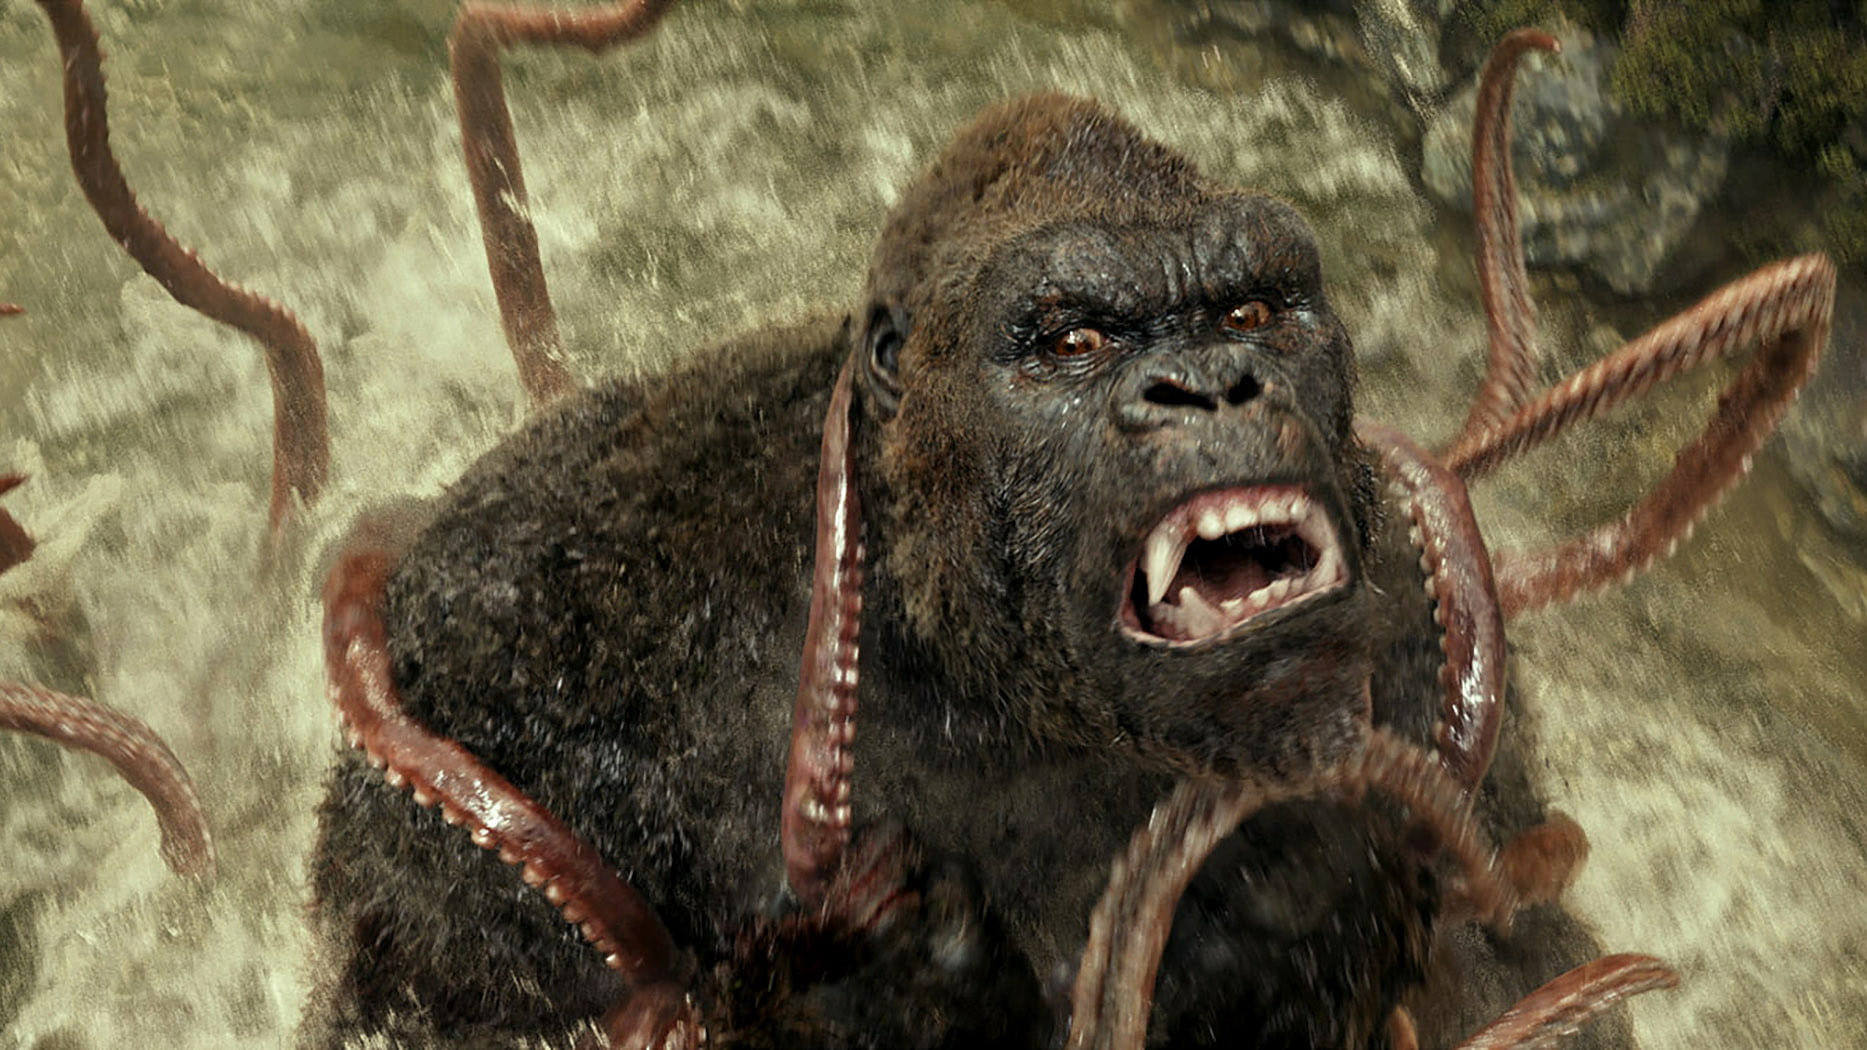 To perfect Kong for 'Skull Island,' the FX team looked back to the 1933 original